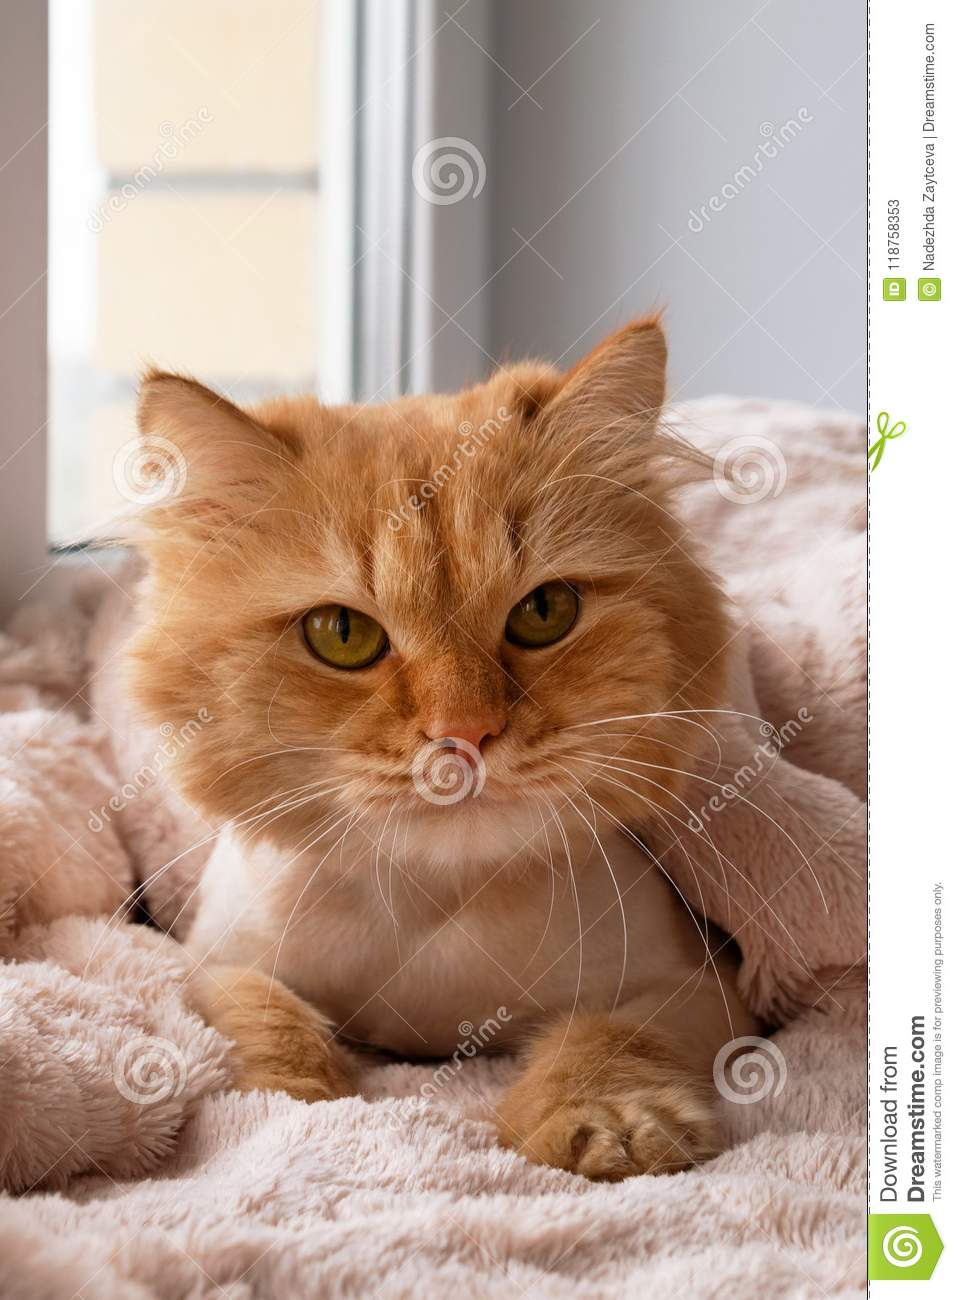 Beautiful Ginger Long Haired Cat Groomed With Haircut Under A Soft